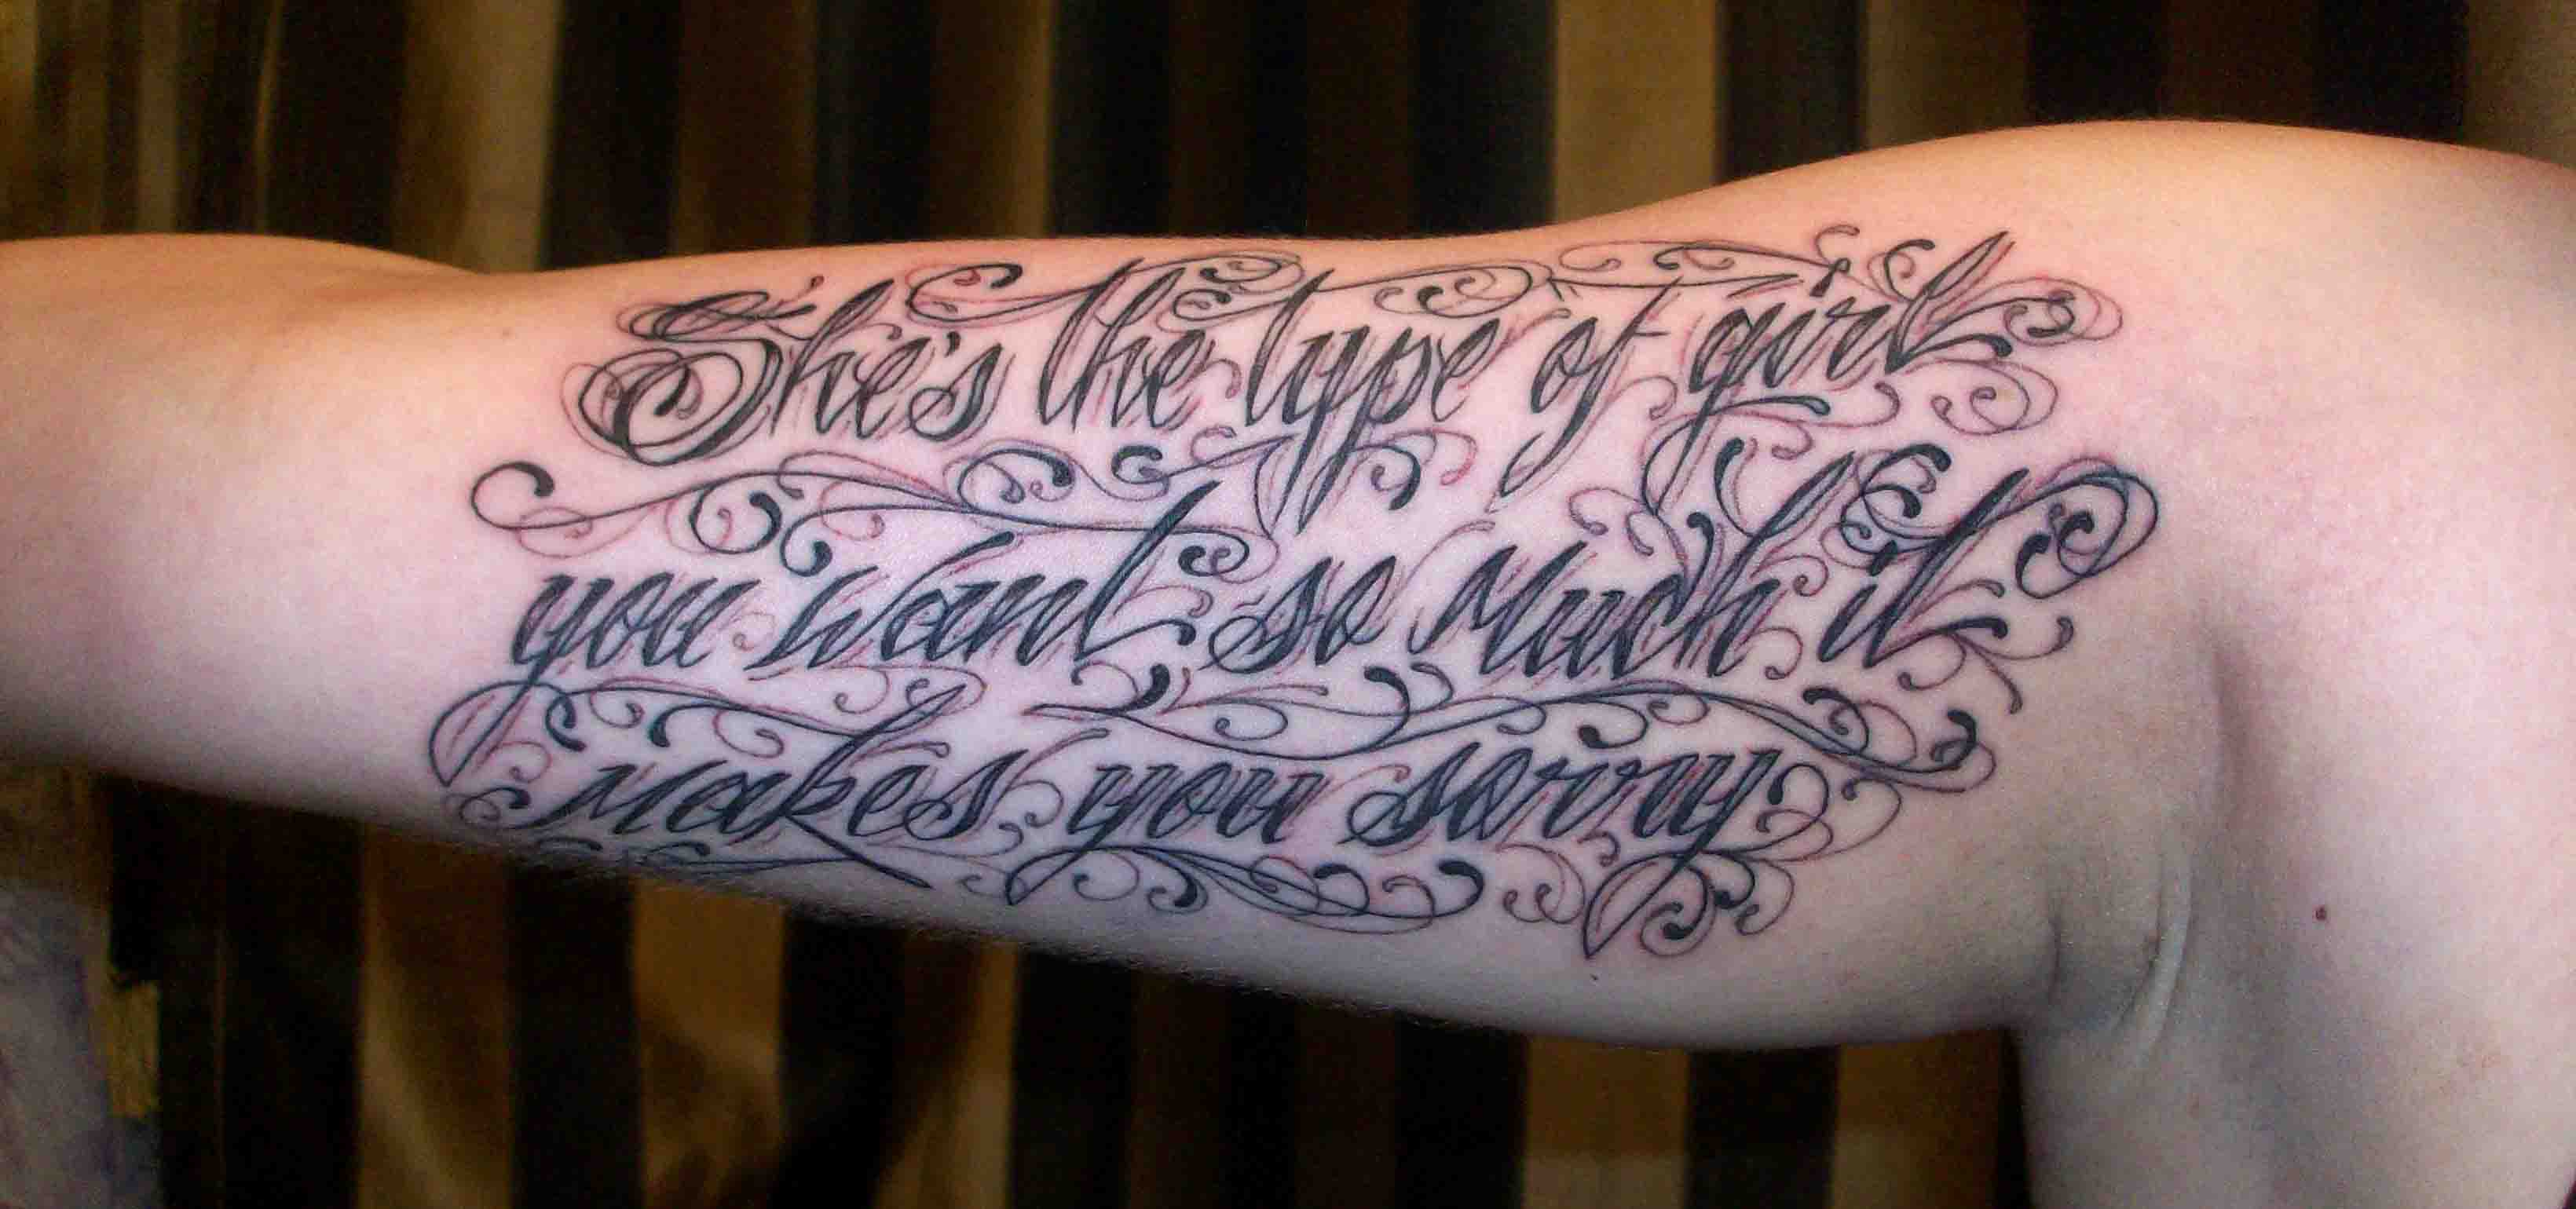 Jose Script Lettering Tattoos